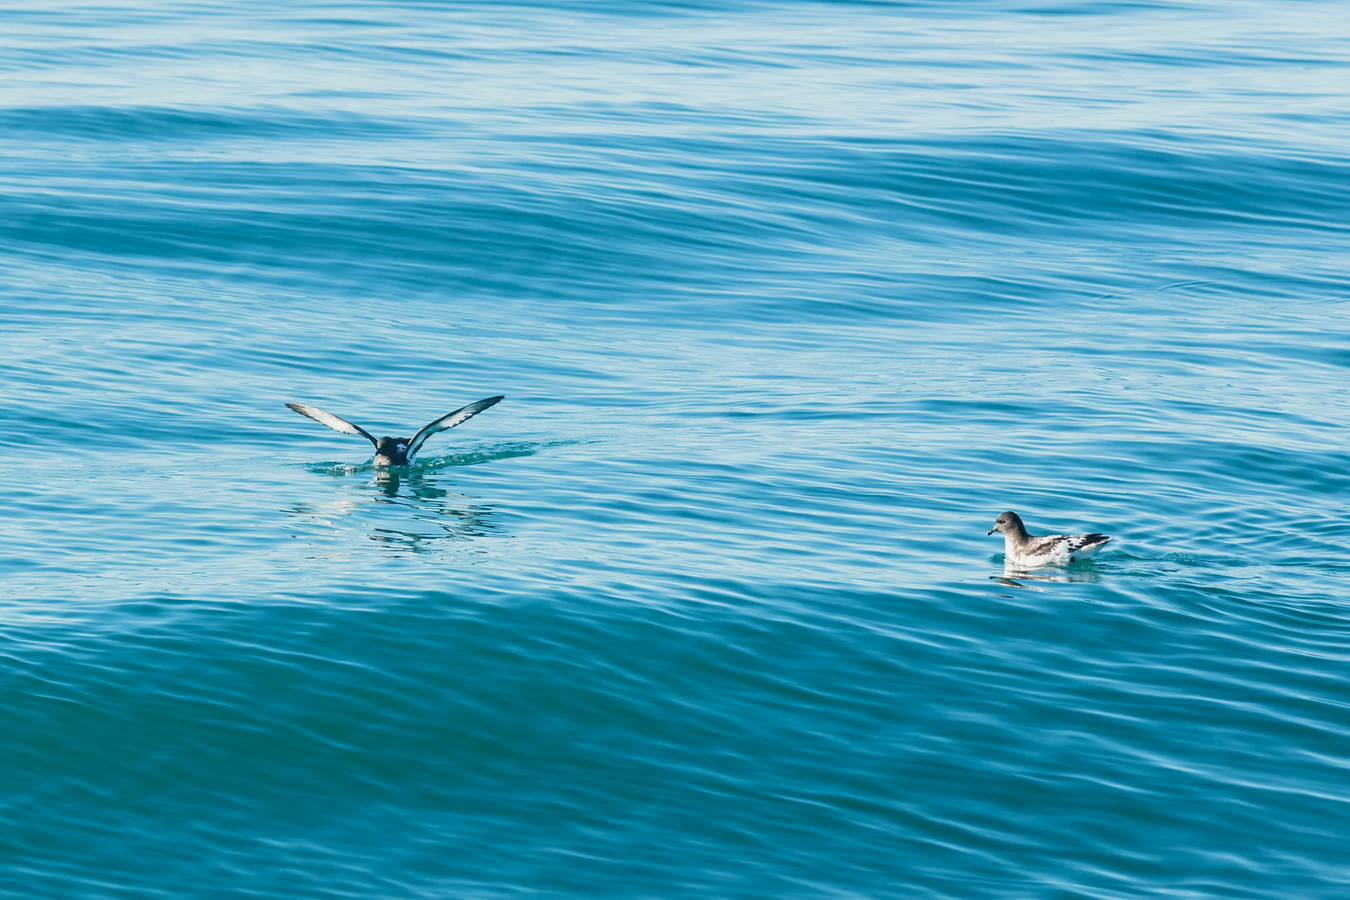 birds, Kaikoura,Whale Watch Tour, South Island ,New Zealand